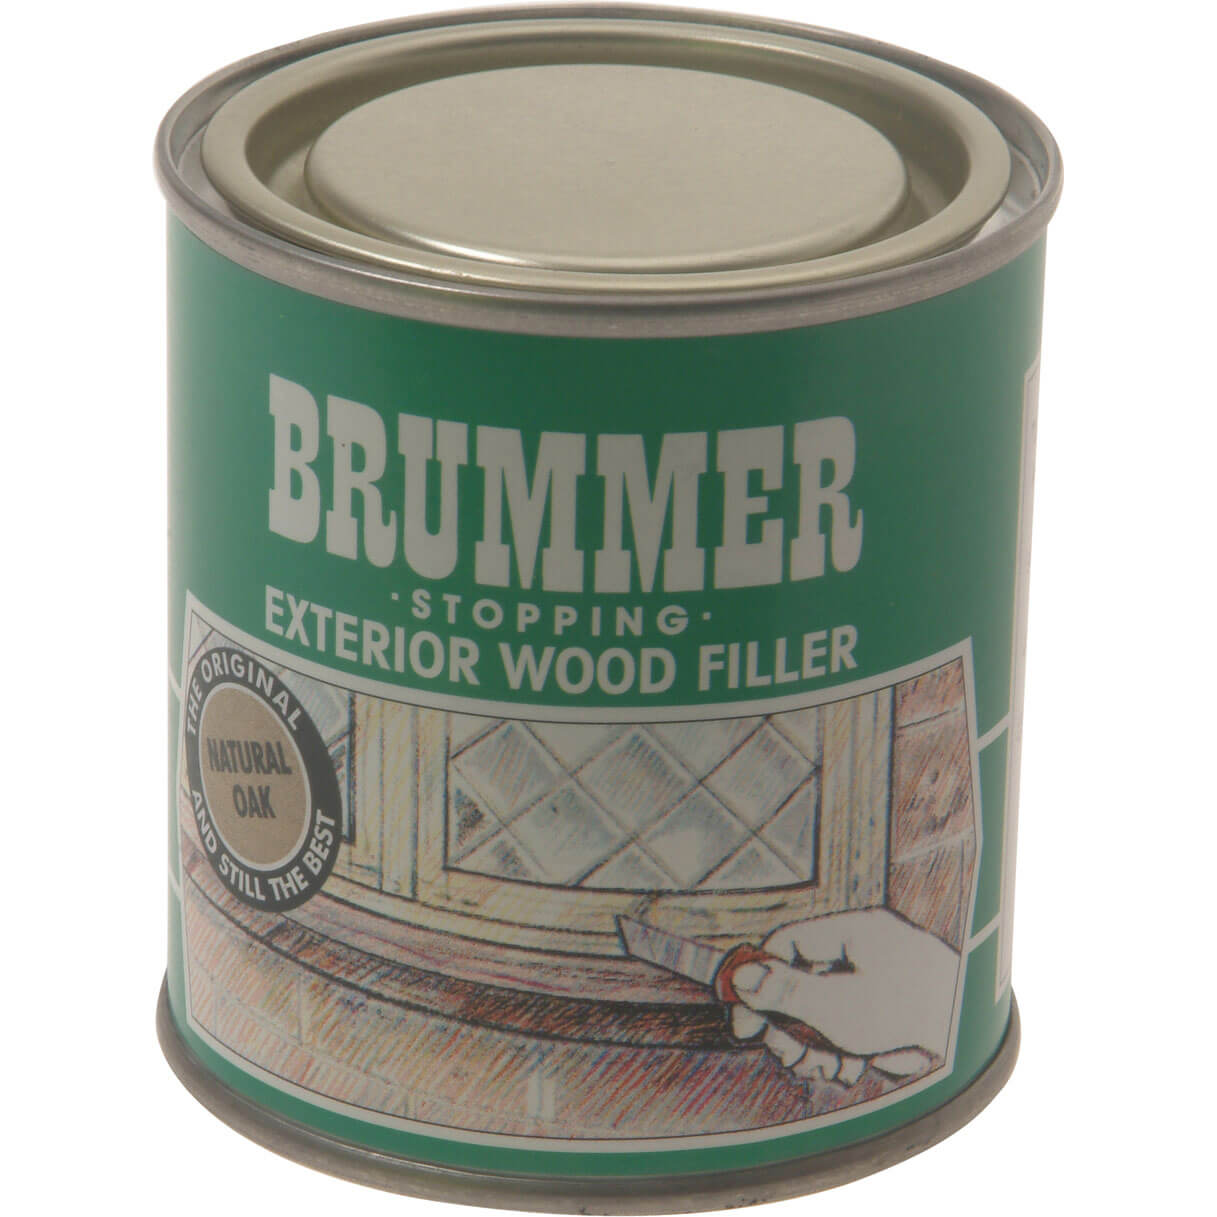 Brummer Green Label Exterior Stopping Wood Filler Medium Oak 625g